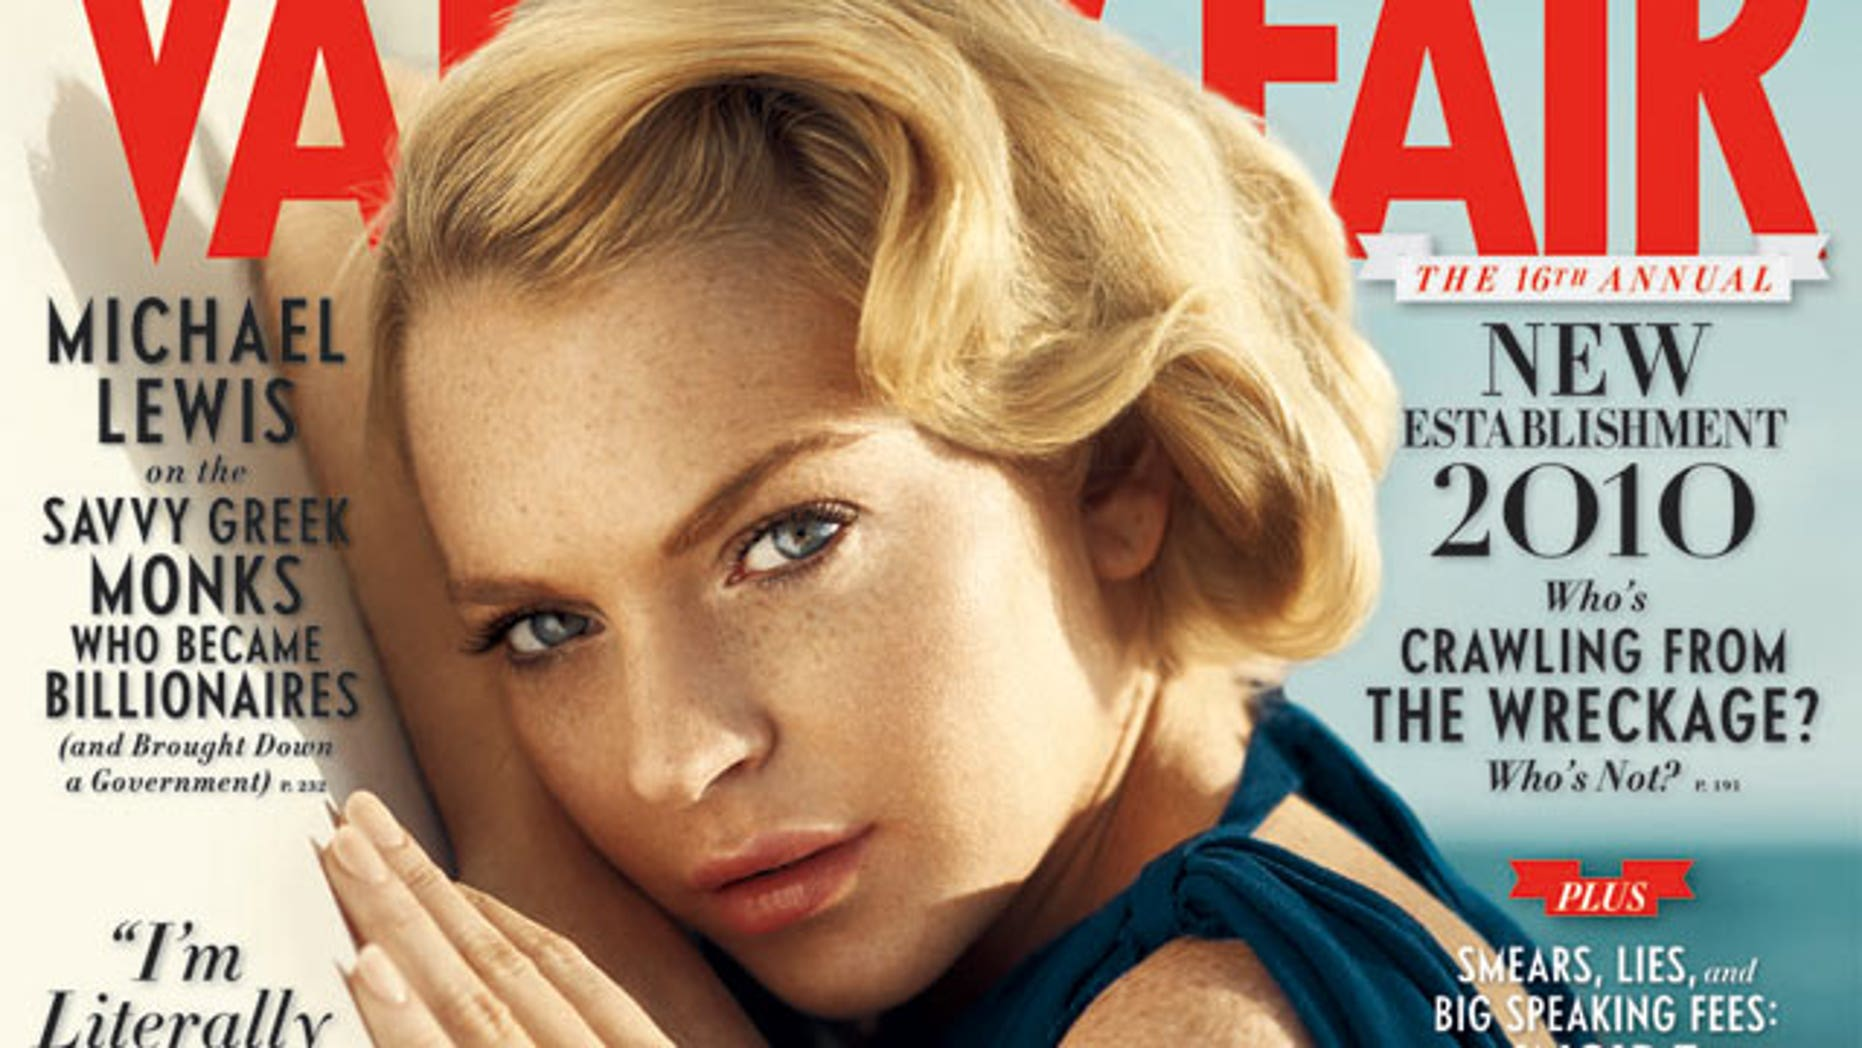 Lindsay Lohan is on the cover of the October issue of Vanity Fair.